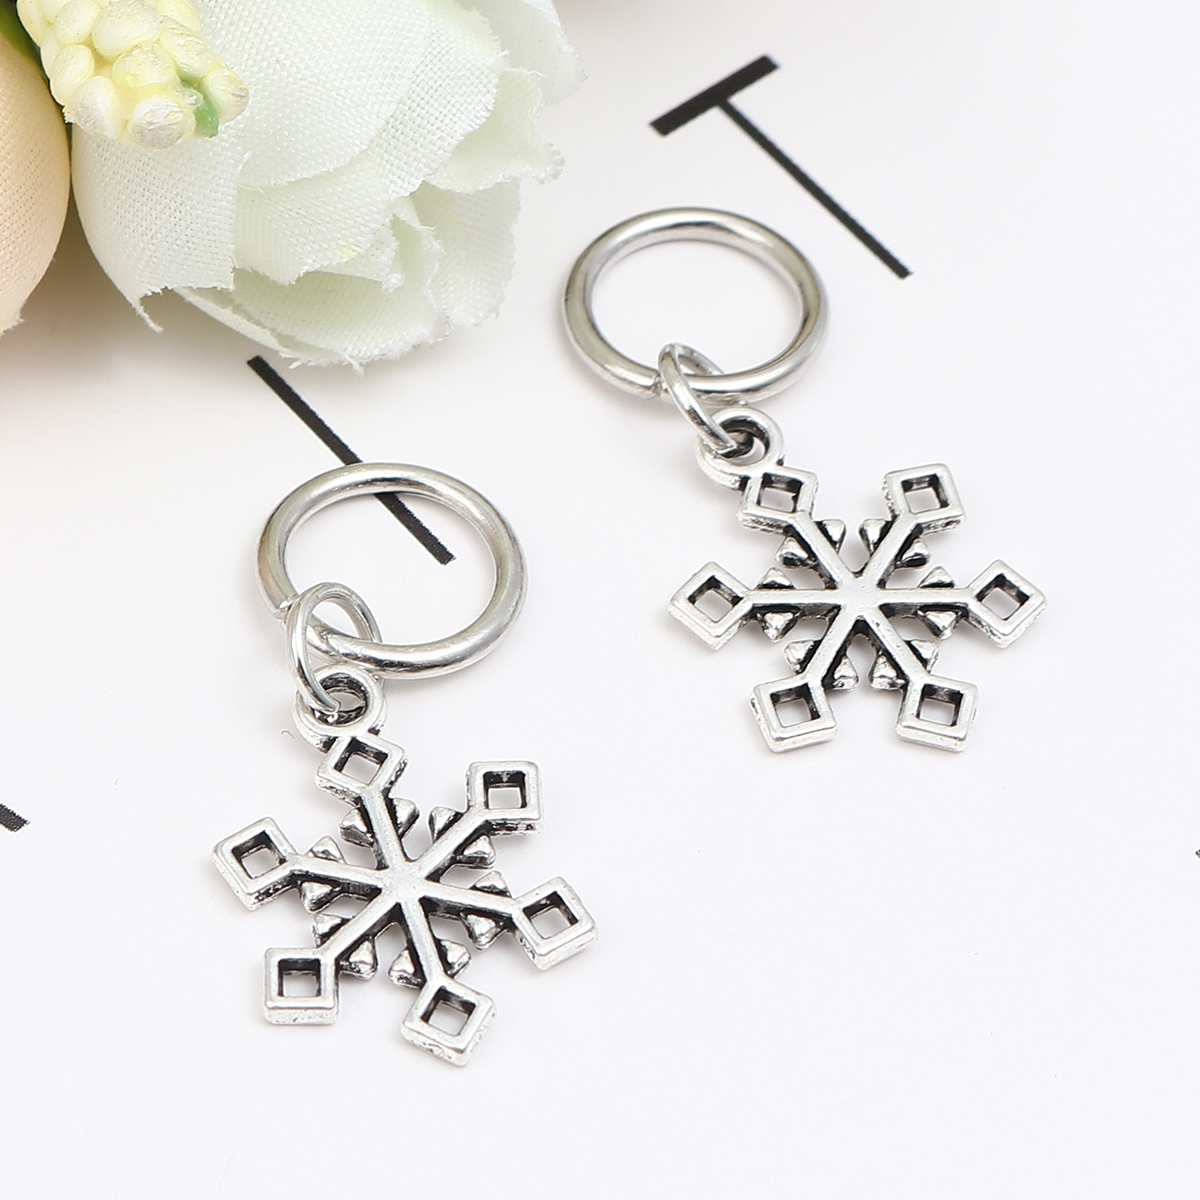 10PCs Zinc Alloy Knitting Stitch Markers Snowflake Angel Antique Silver Color DIY Craft Supplies Home Sewing Helpful Accessories(China)